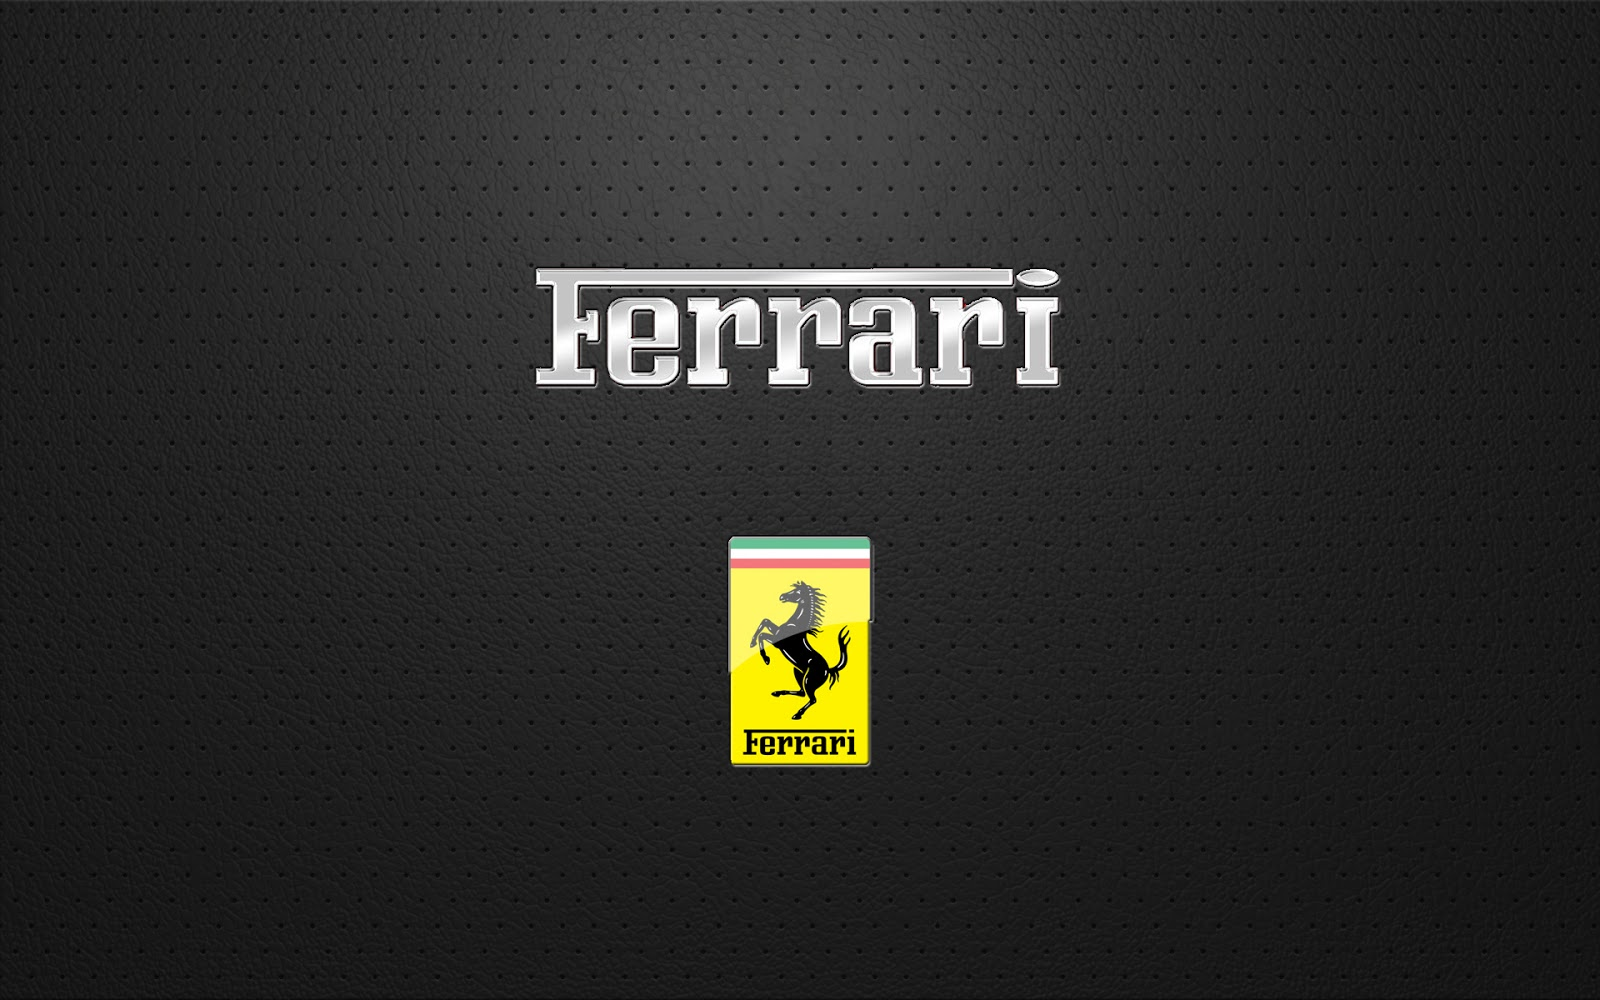 Ferrari Logo, Ferrari Car Symbol Meaning and History  Car Brand Names.com